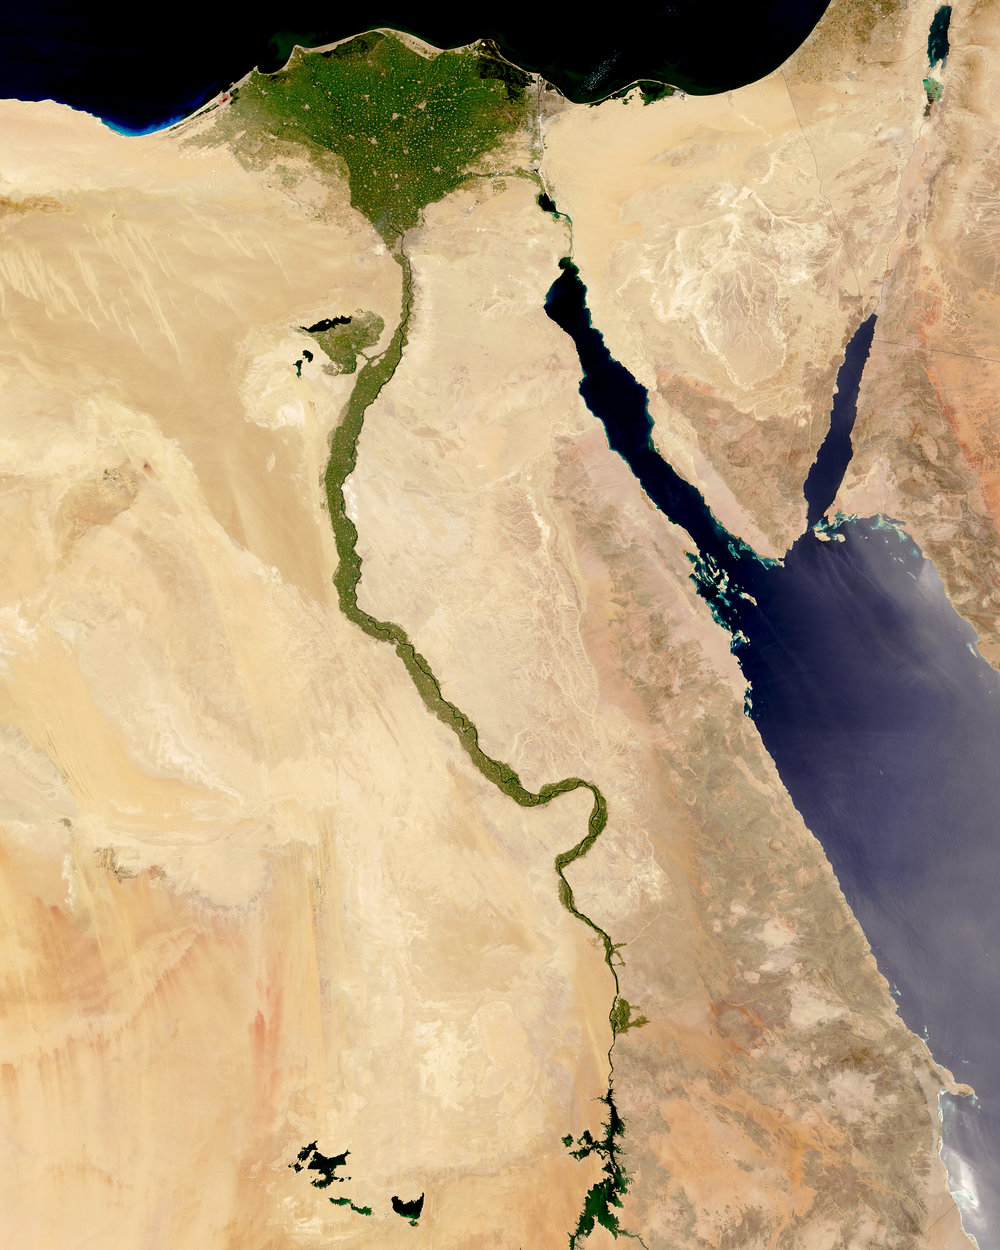 "Another 2018 favorite was this amazing Overview of the Nile River in Egypt. The Nile is commonly regarded as the longest river in the world, flowing for 4,258 miles (6,853 km) over 11 countries in northeastern Africa. Civilizations since ancient times have depended on the waters of the Nile to flood and fertilize surrounding desert lands. Check back tomorrow for another popular Overview from 2018!  29°20'11.0""N, 31°13'28.8""E  Source imagery: DigitalGlobe"